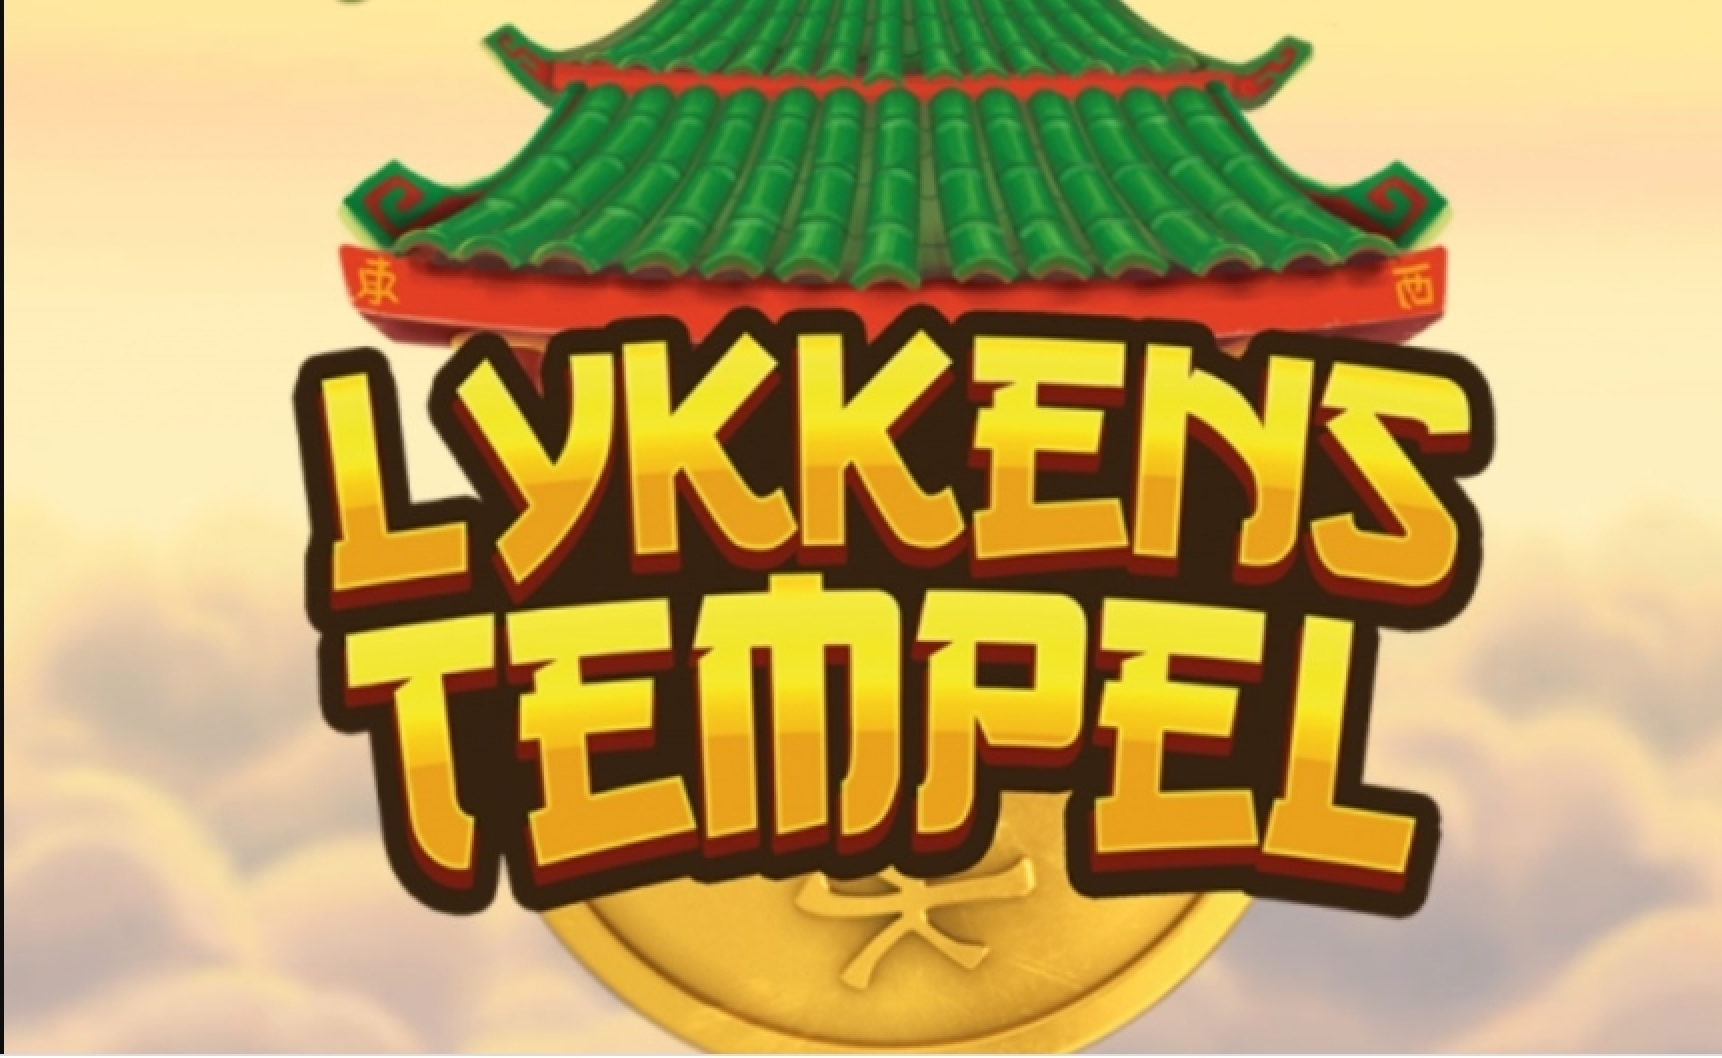 The Lykkens Tempel Online Slot Demo Game by Magnet Gaming